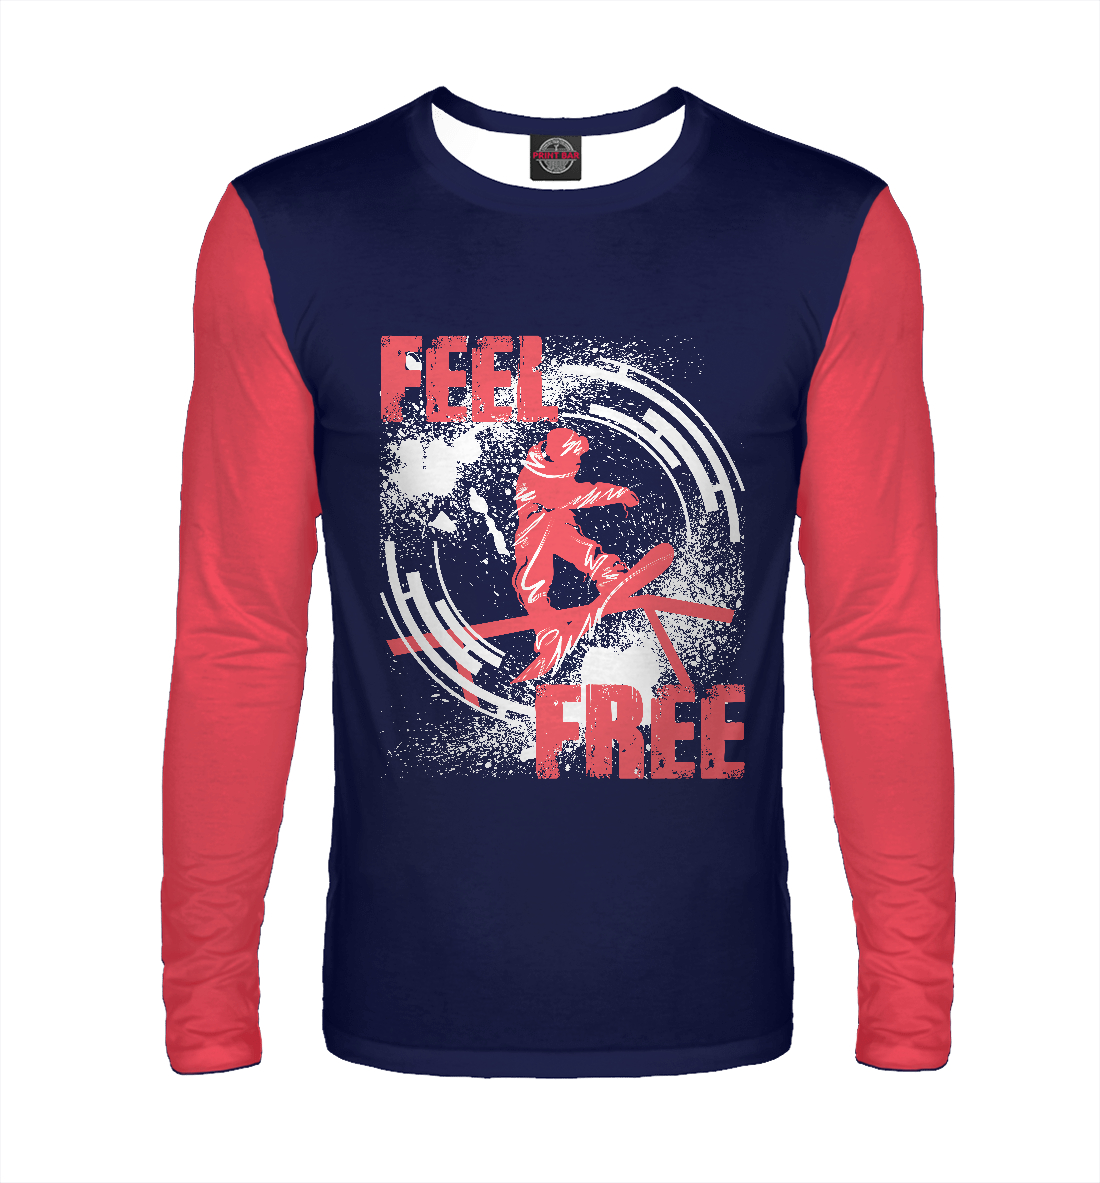 Feel free (red)